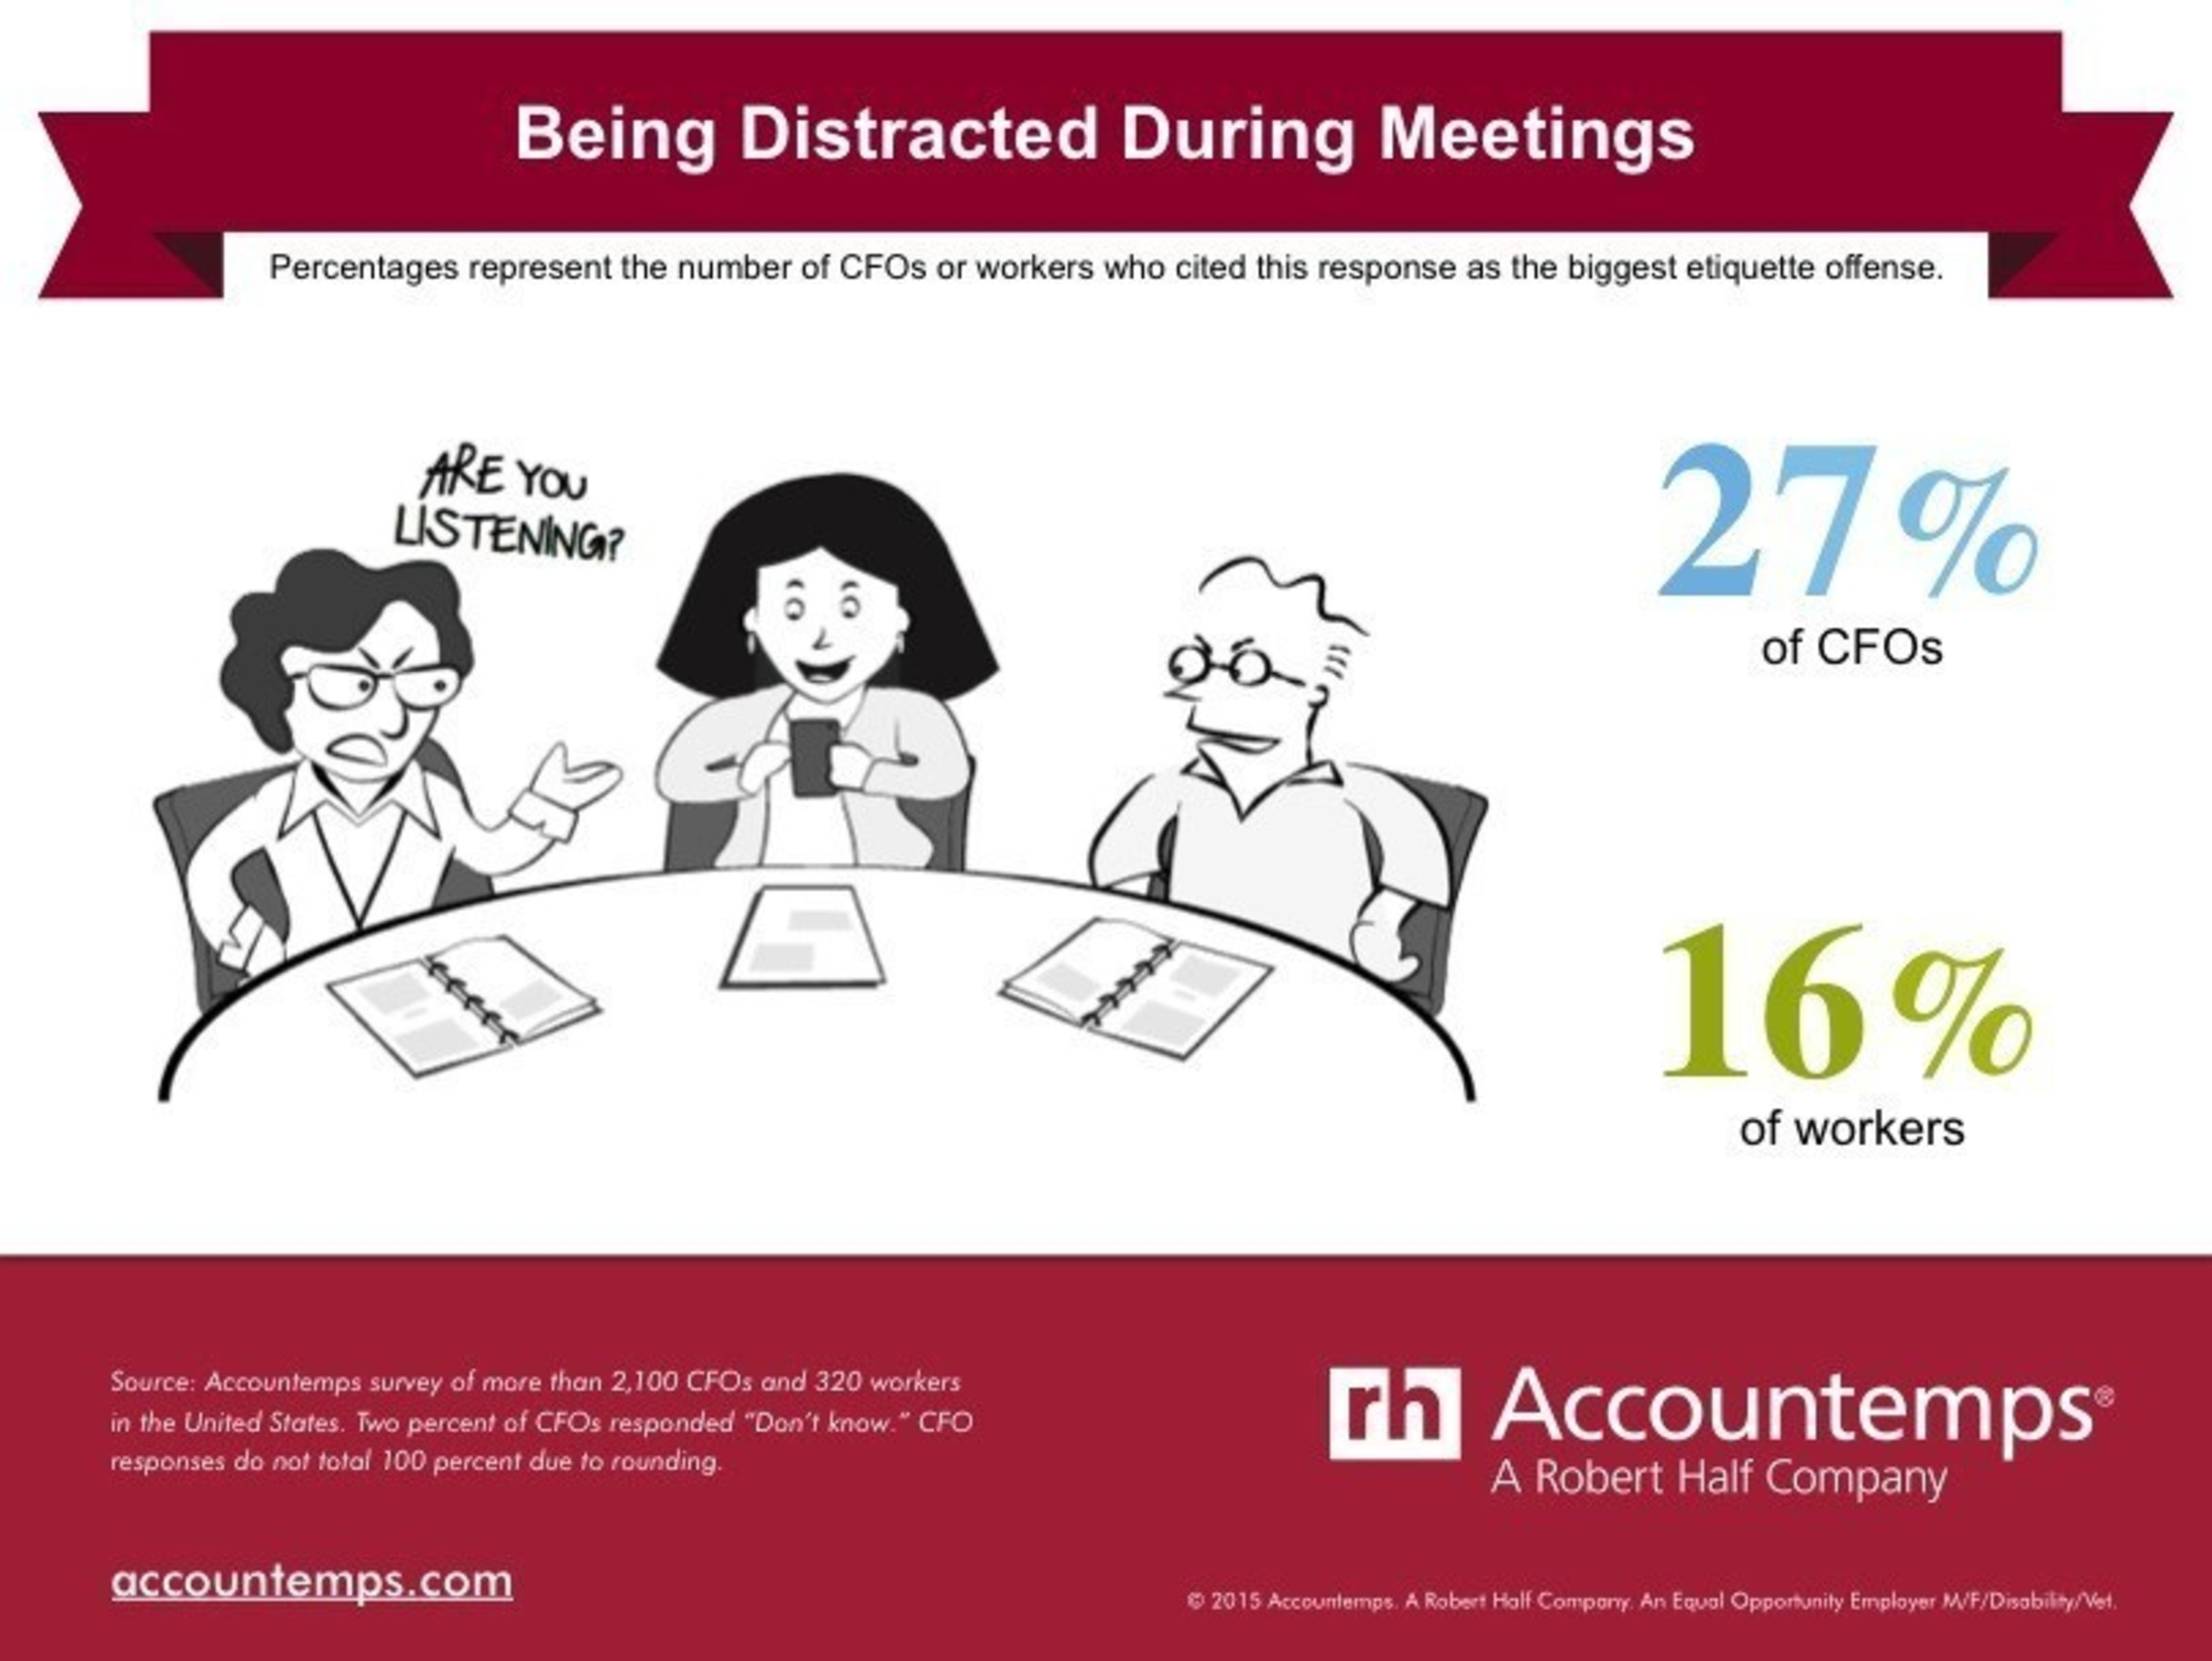 Twenty-seven percent of CFOs said the most common workplace etiquette offense is being distracted during meetings, according to a survey by Accountemps.